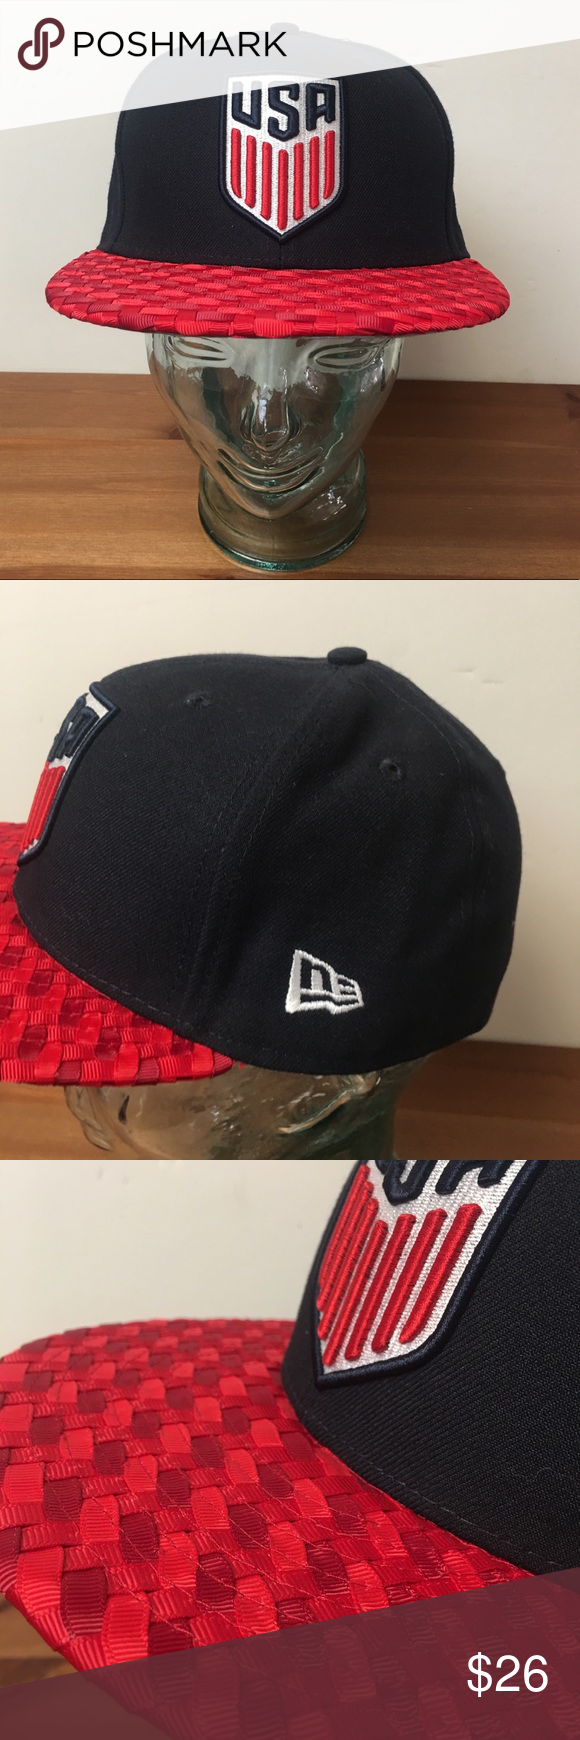 Usa Soccer Fitted Hat Cap World Cup 7 1 4 Outlaws Represent The Awesomeness Of Usa Soccer Excellent Condition Nice Textured Bill Fitted Hats Usa Soccer New Era